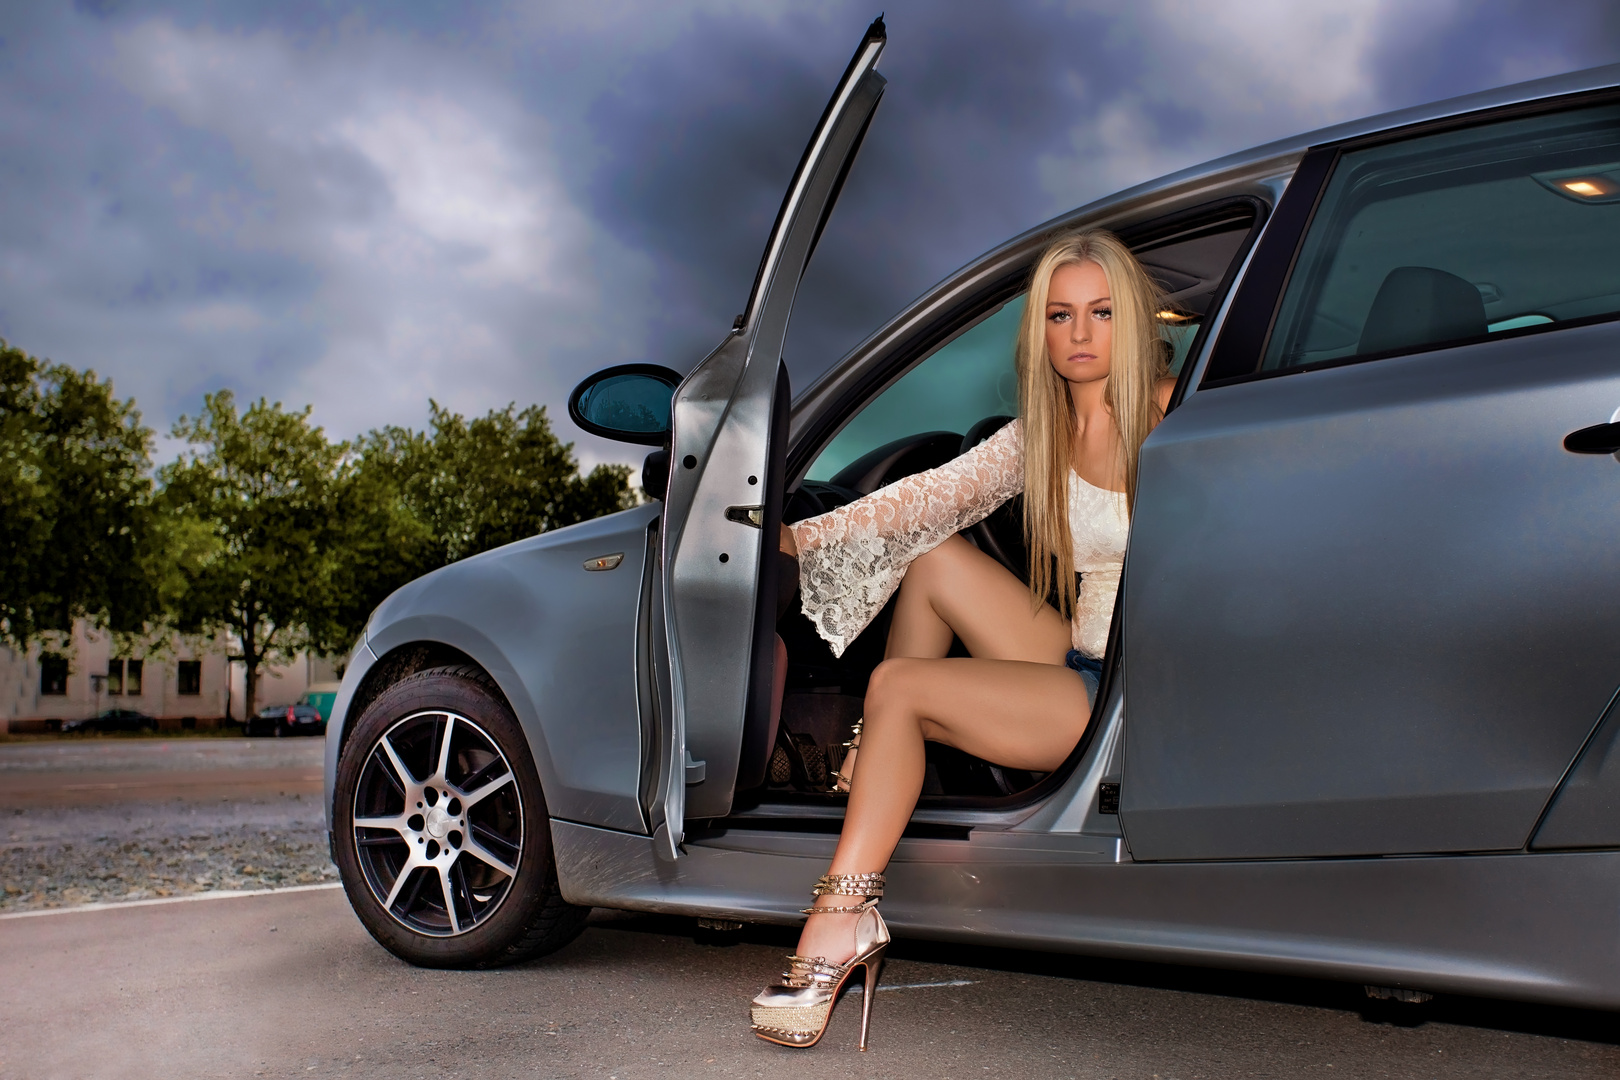 shooting with my car ;)